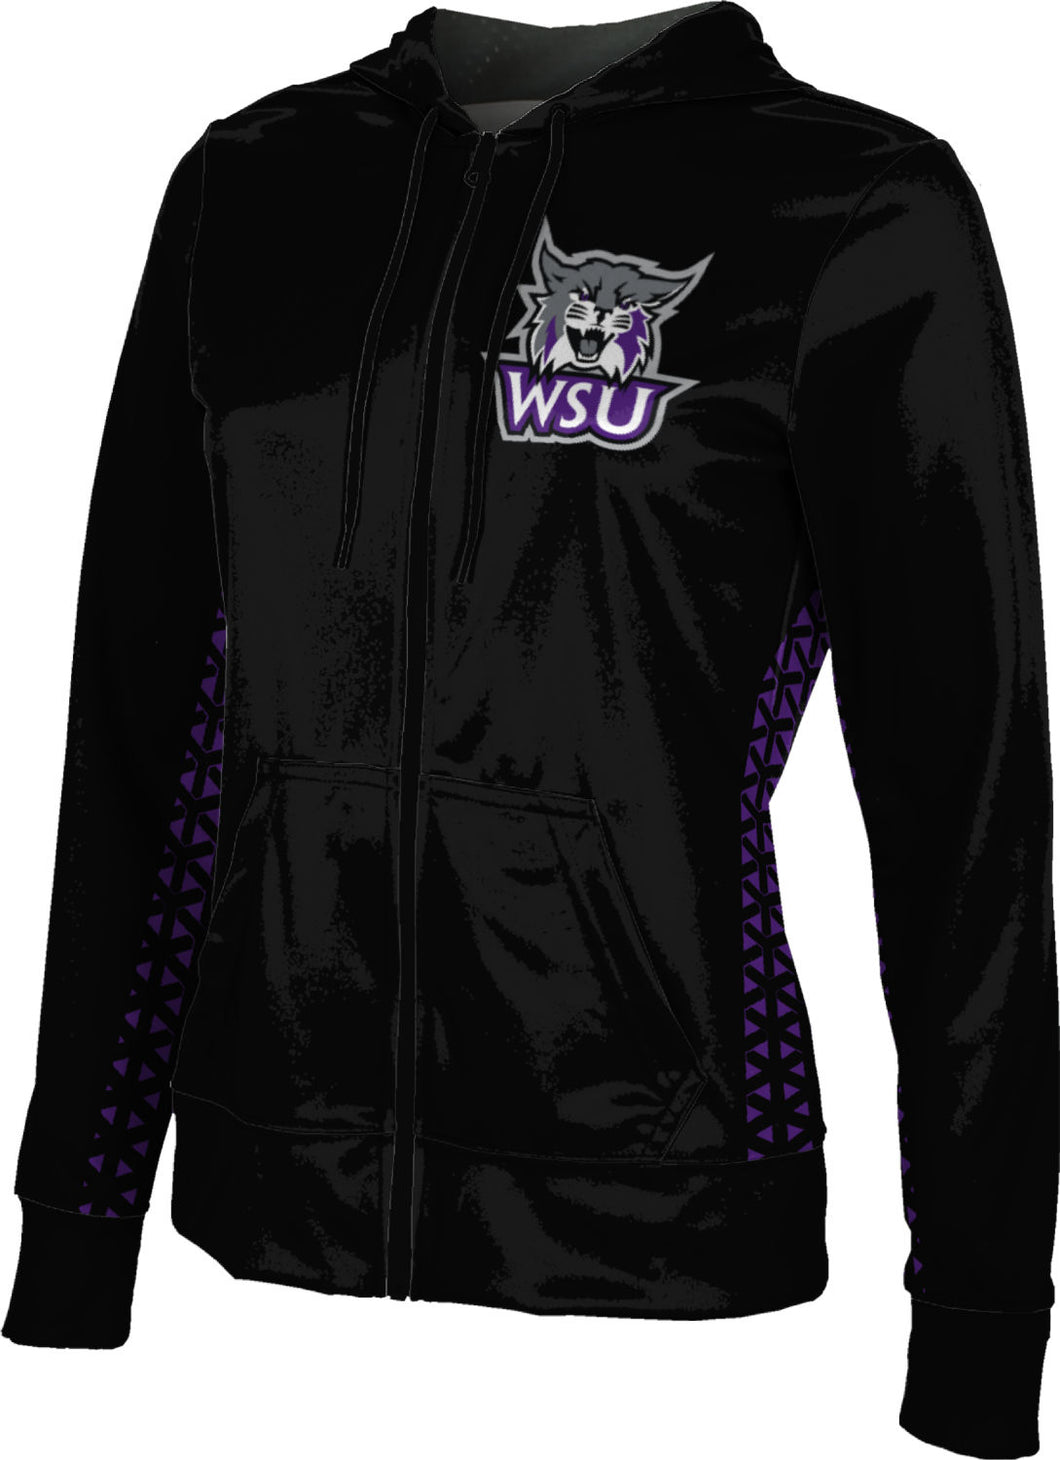 Weber State University: Girls' Full Zip Hoodie - Geometric